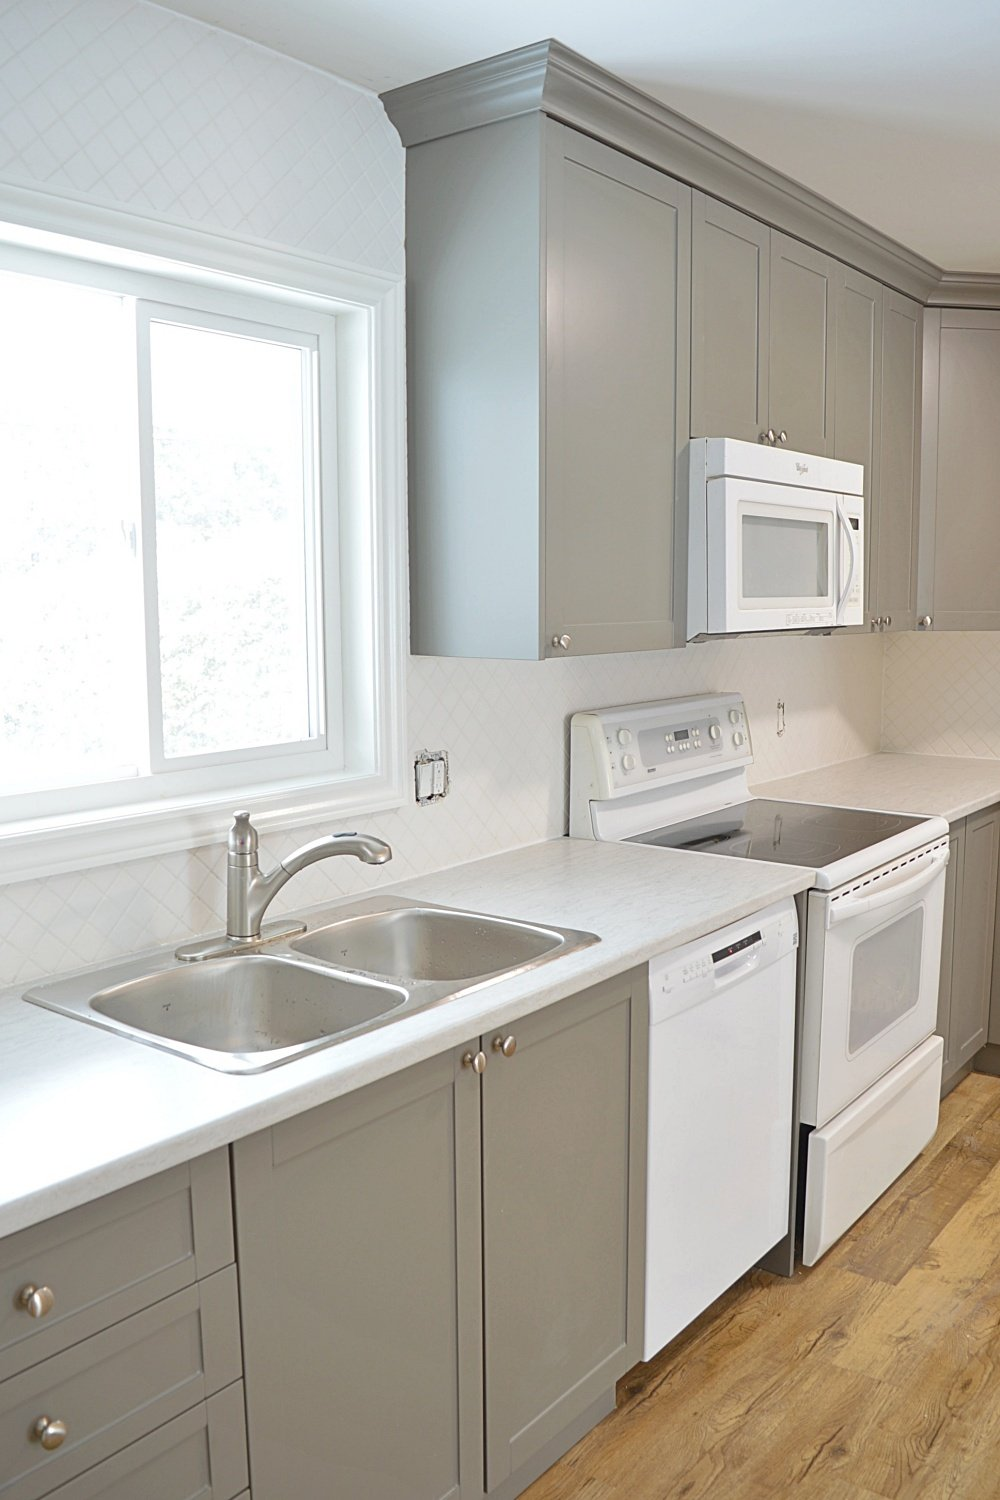 rental property kitchen renovation